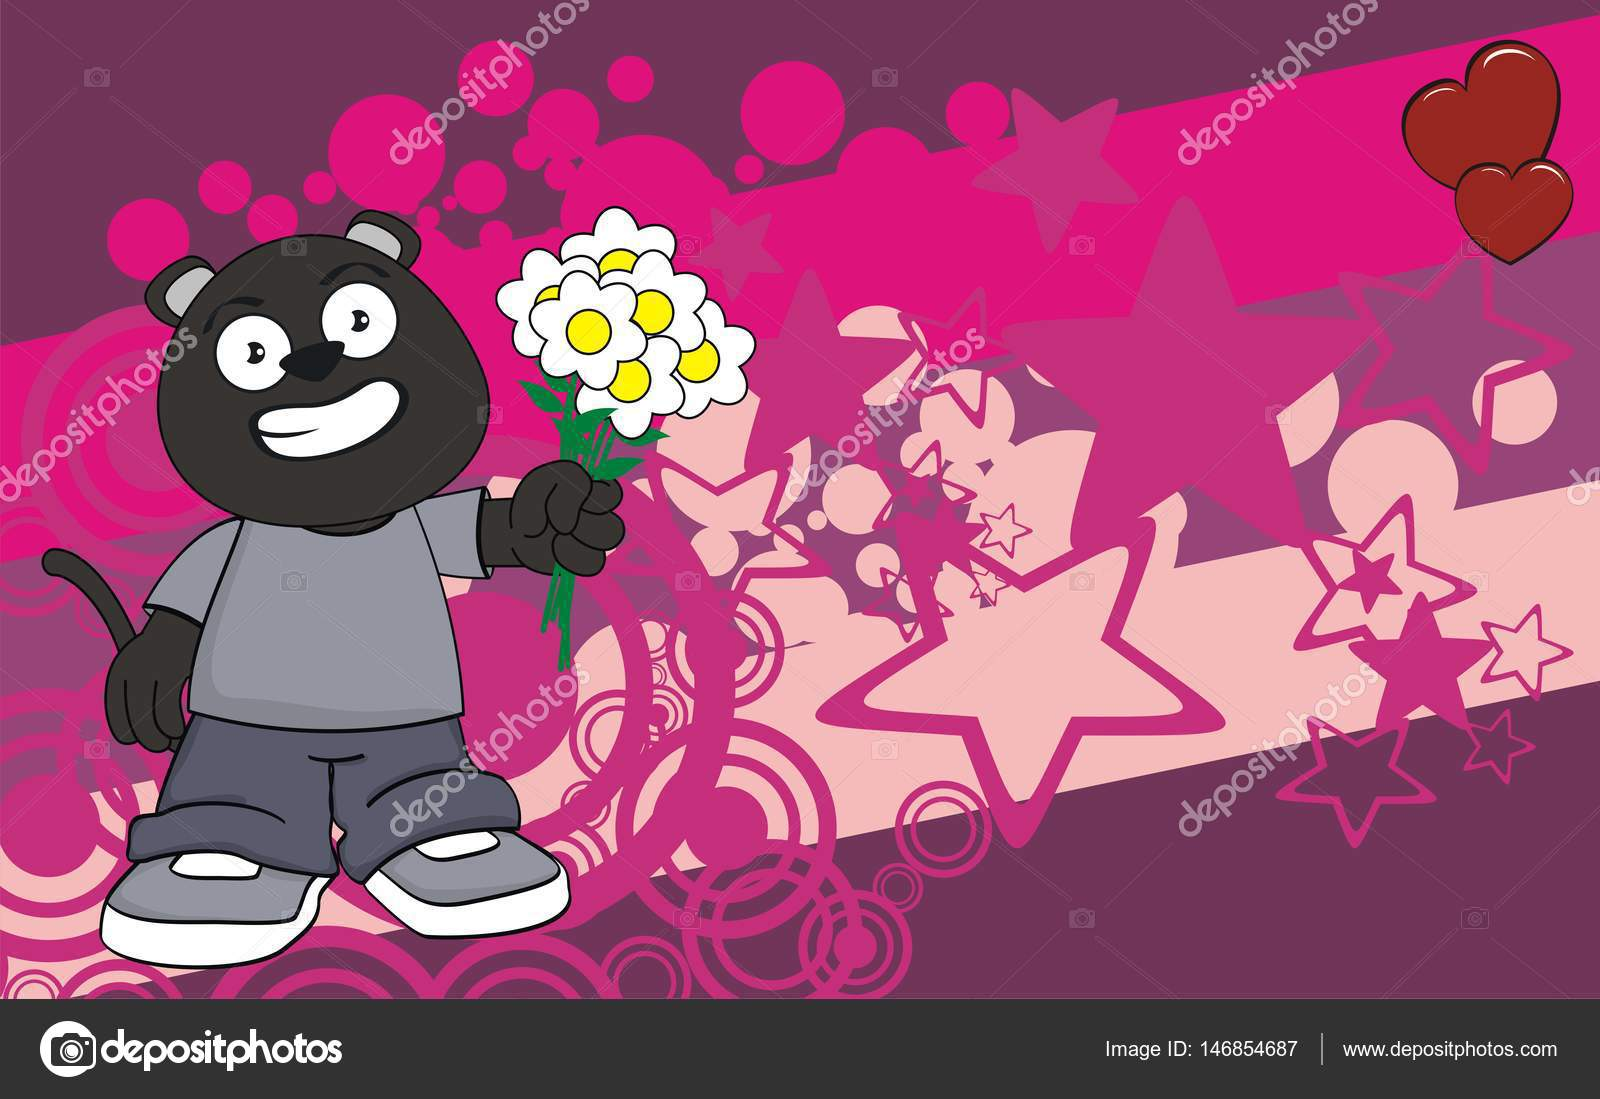 Flowers Little Panther Kid Cartoon Expression Background Stock